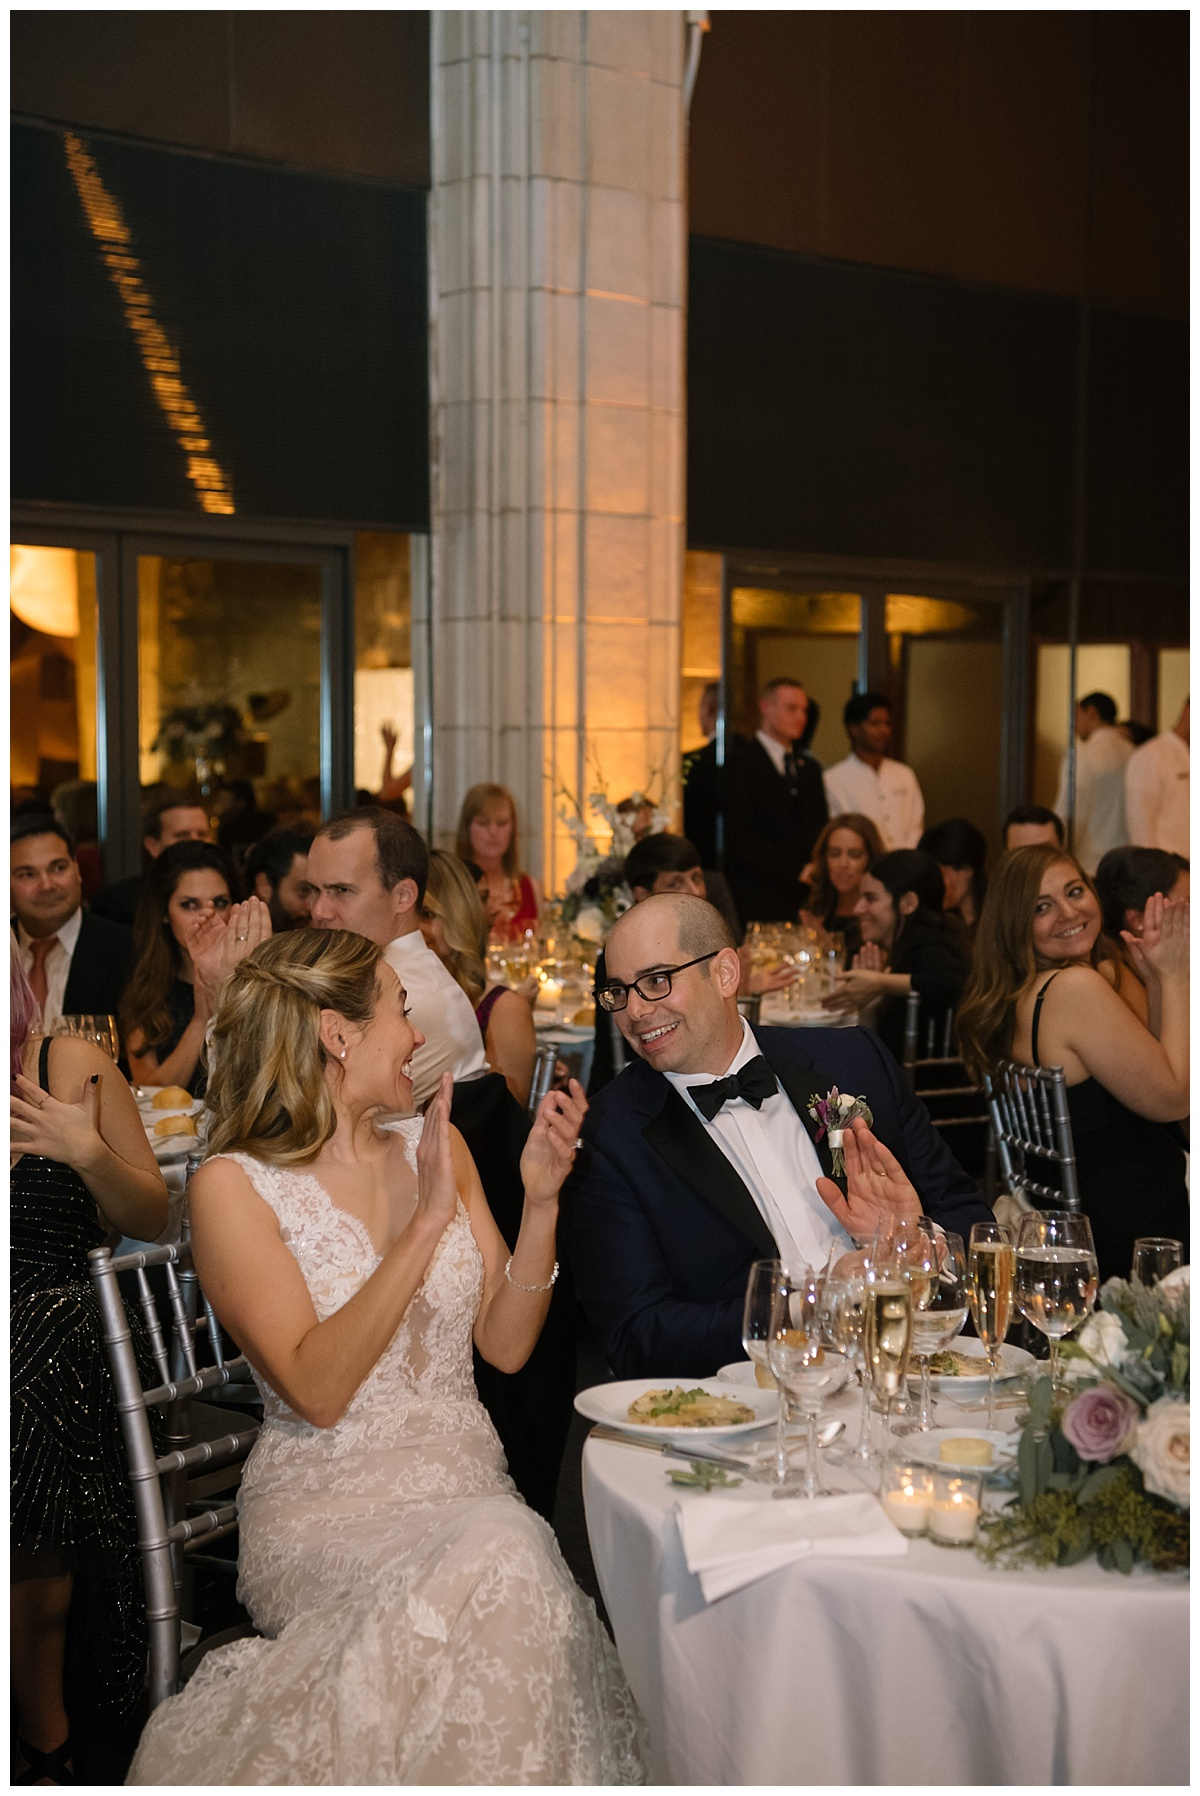 A newly wedded couple listening to a speech from their wedding guests during a wedding reception at Guastavinos in New York City. Dress by Ines Di Santo.